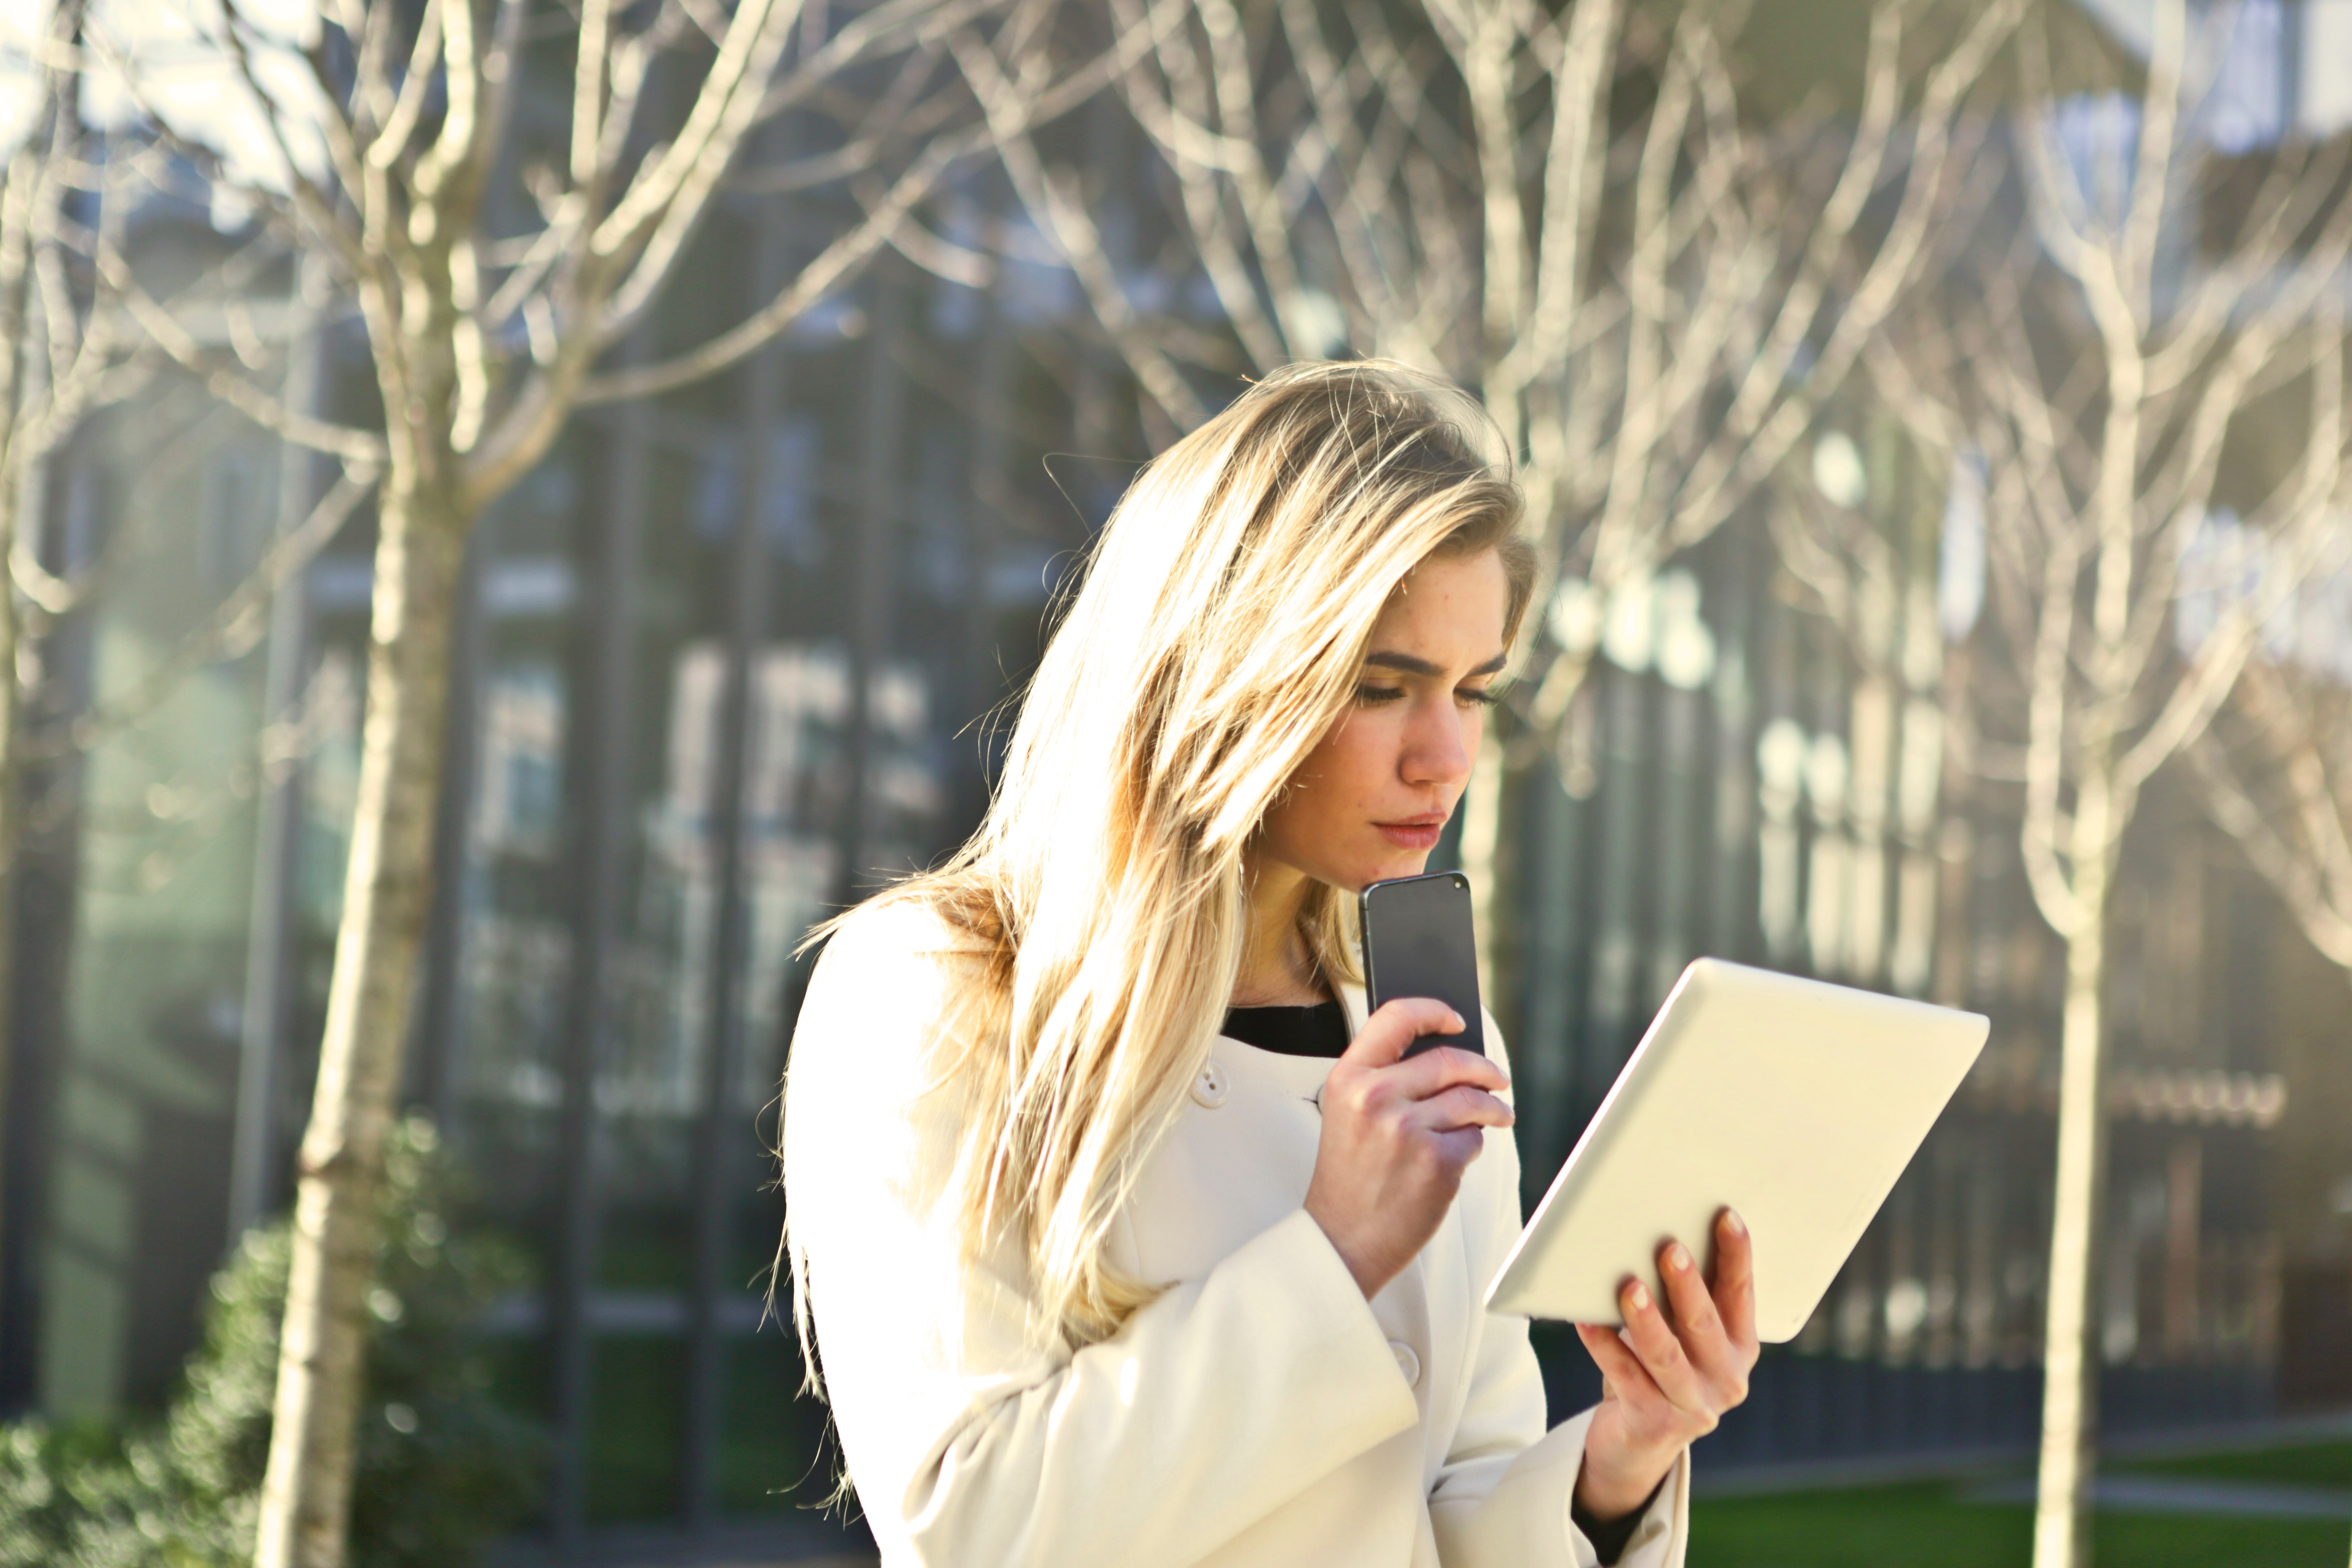 Brown-haired Woman Holding a White Wireless Device, Park, Young, Work, Woman, HQ Photo